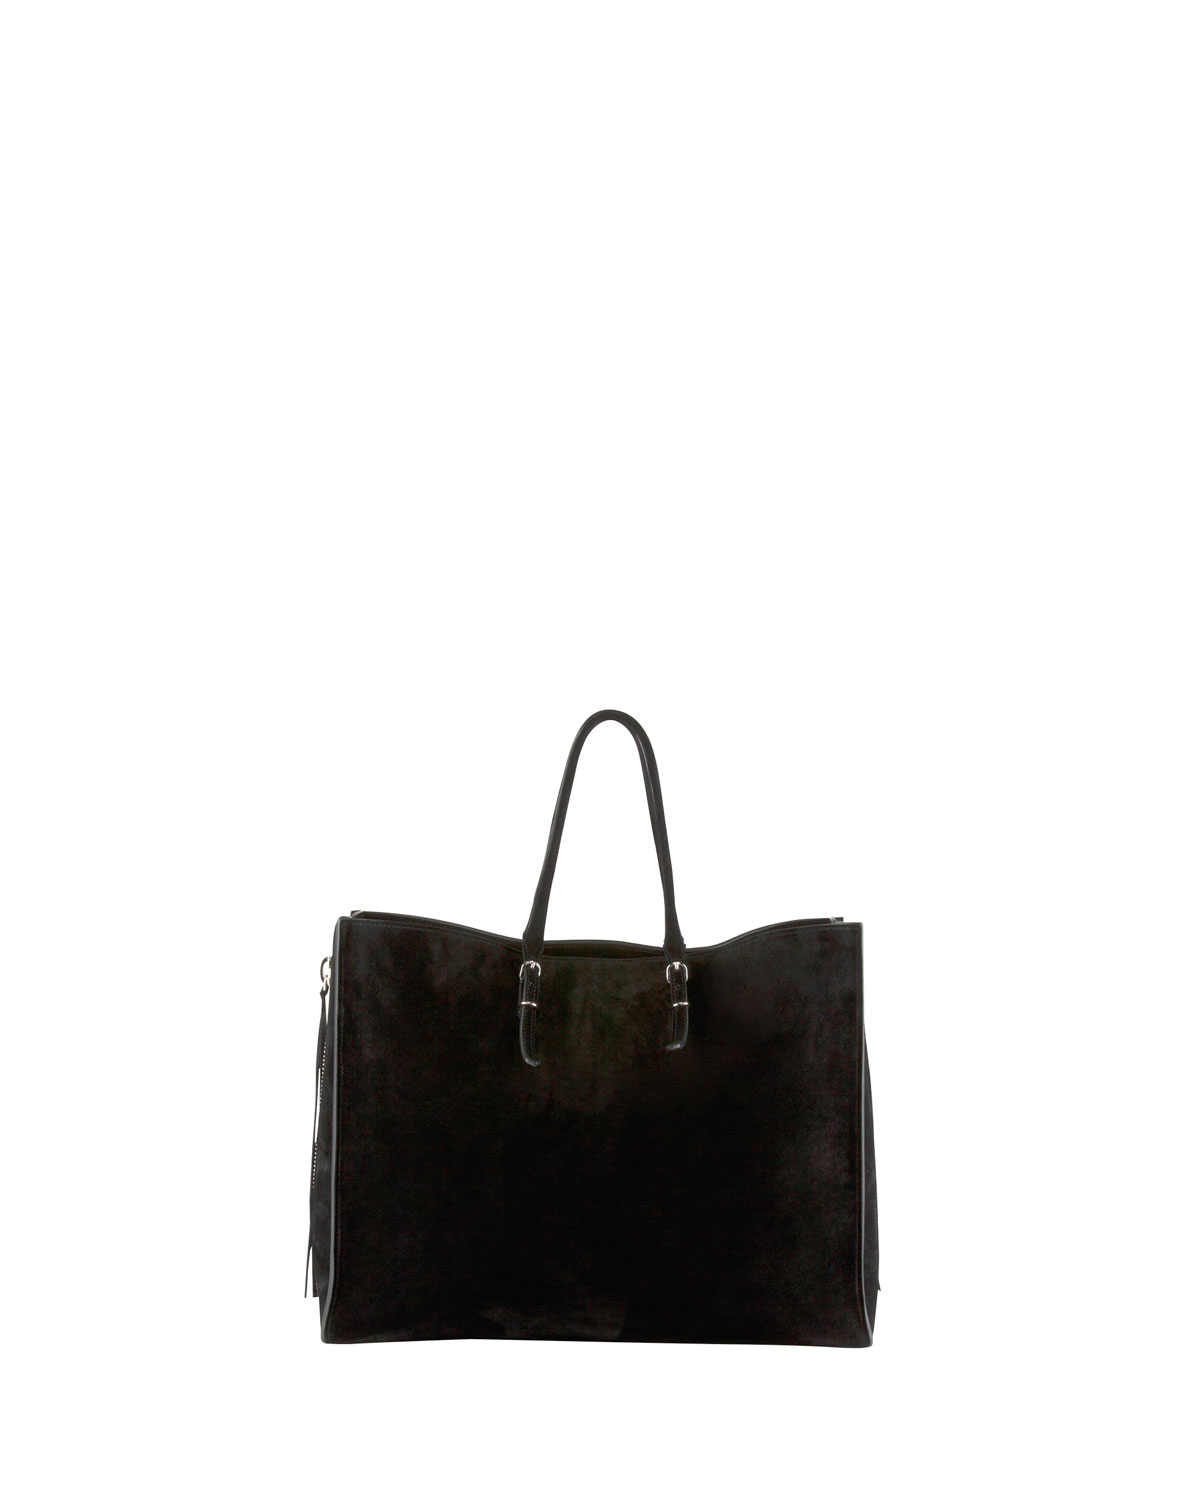 Balenciaga Papier A4 Side Zip Suede Tote Bag in Black | Lyst